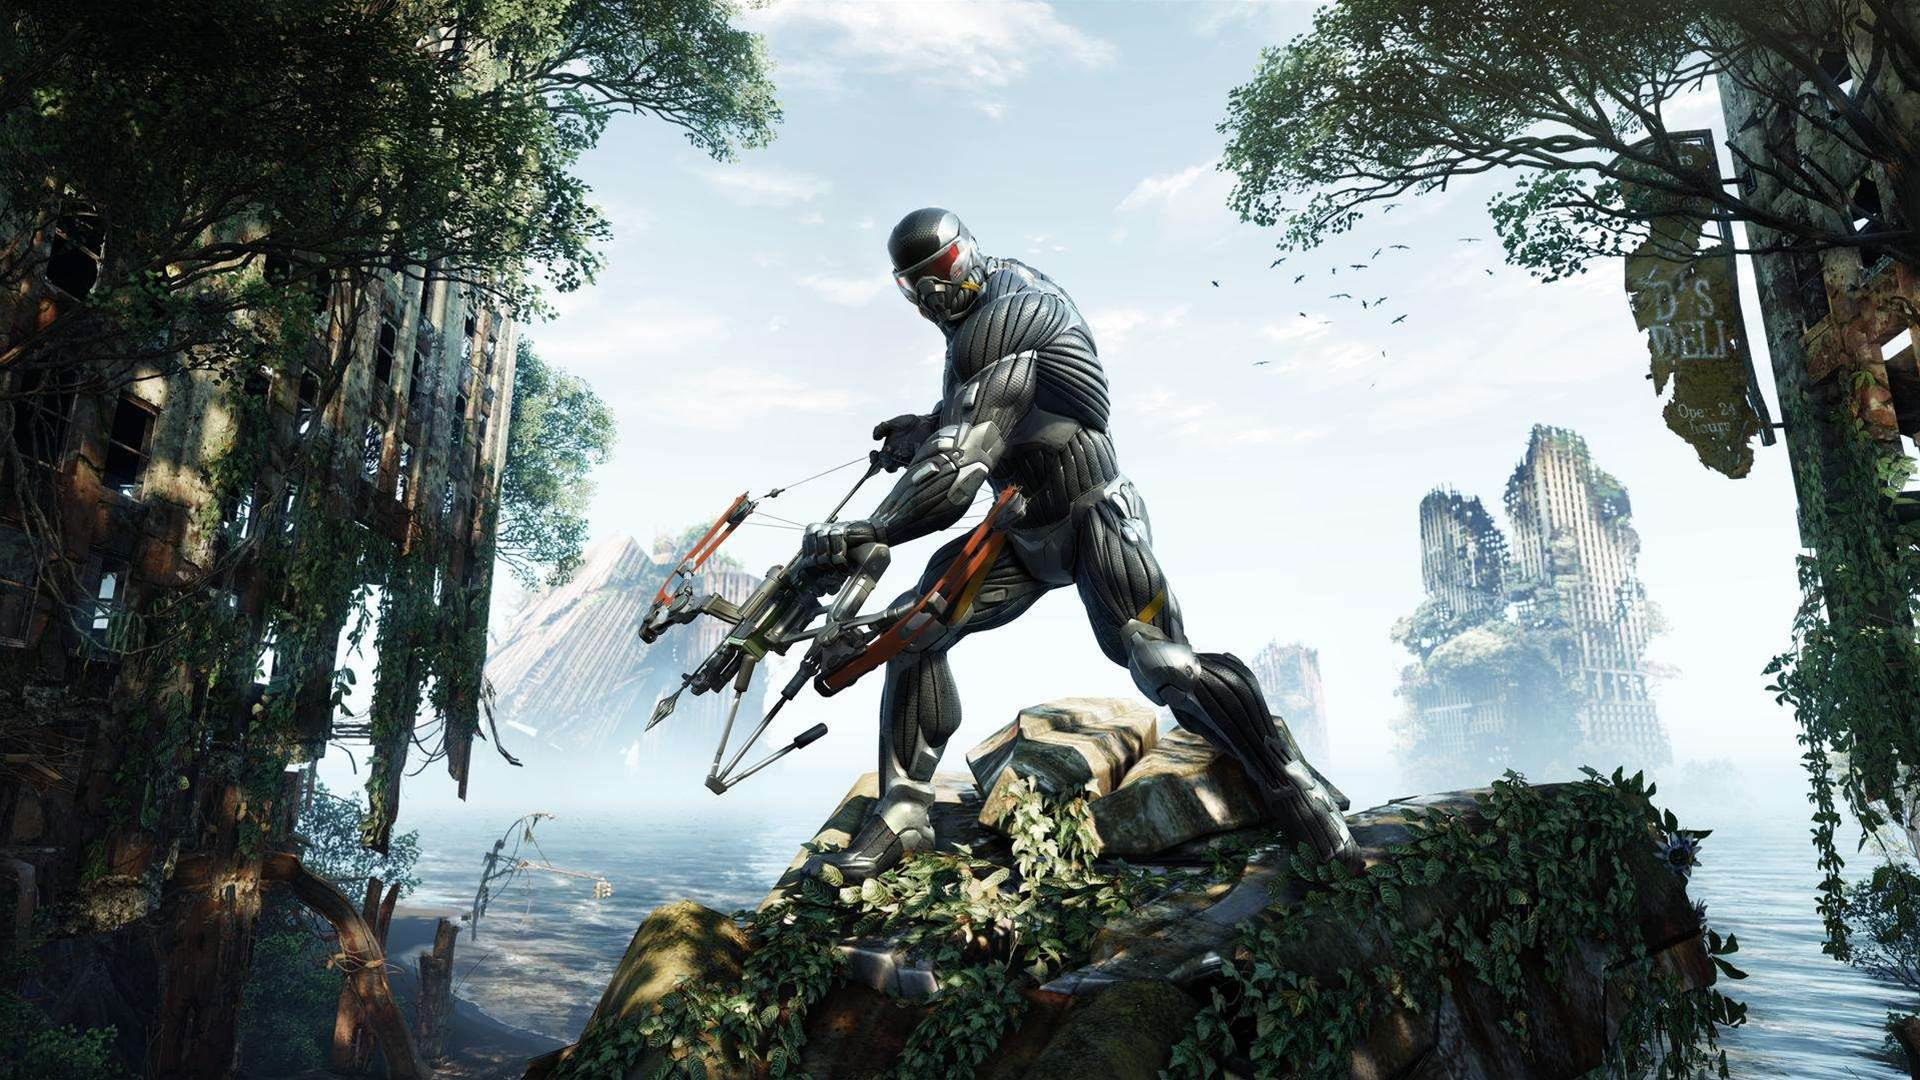 Nanosuit up! Gorgeous new Crysis 3 screenshots and concept art unleashed